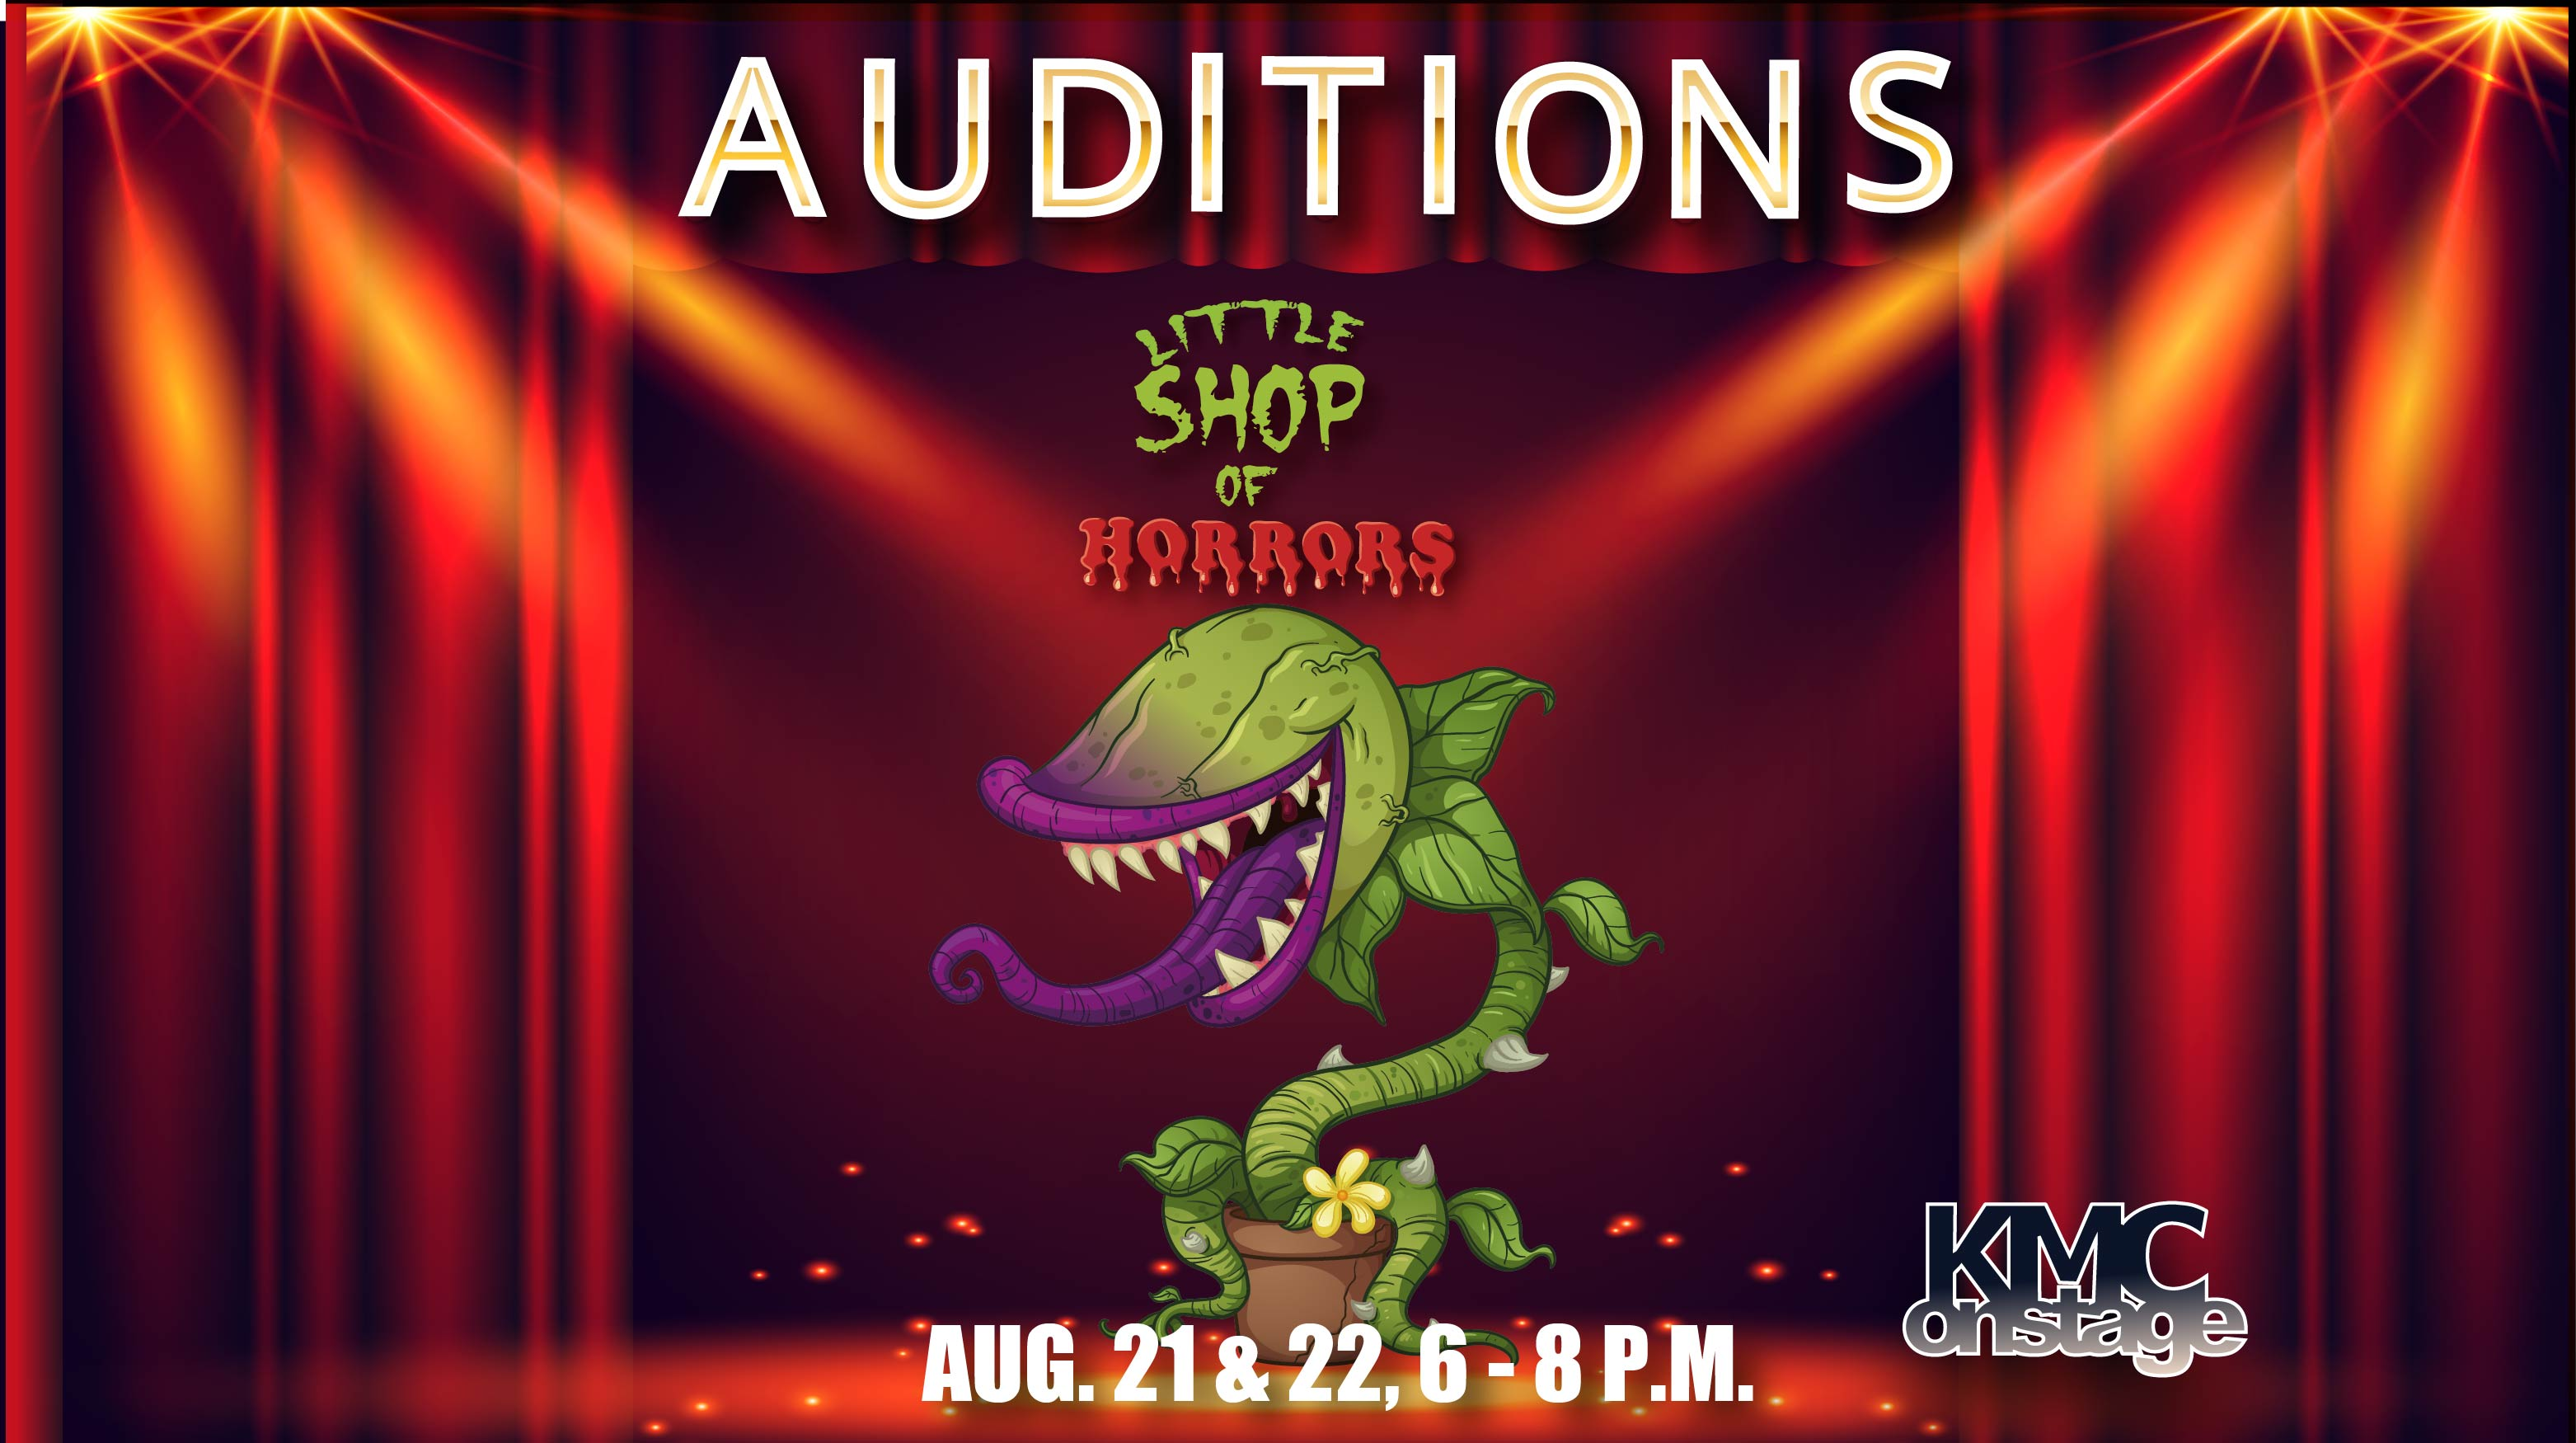 Auditions: Little Shop of Horrors